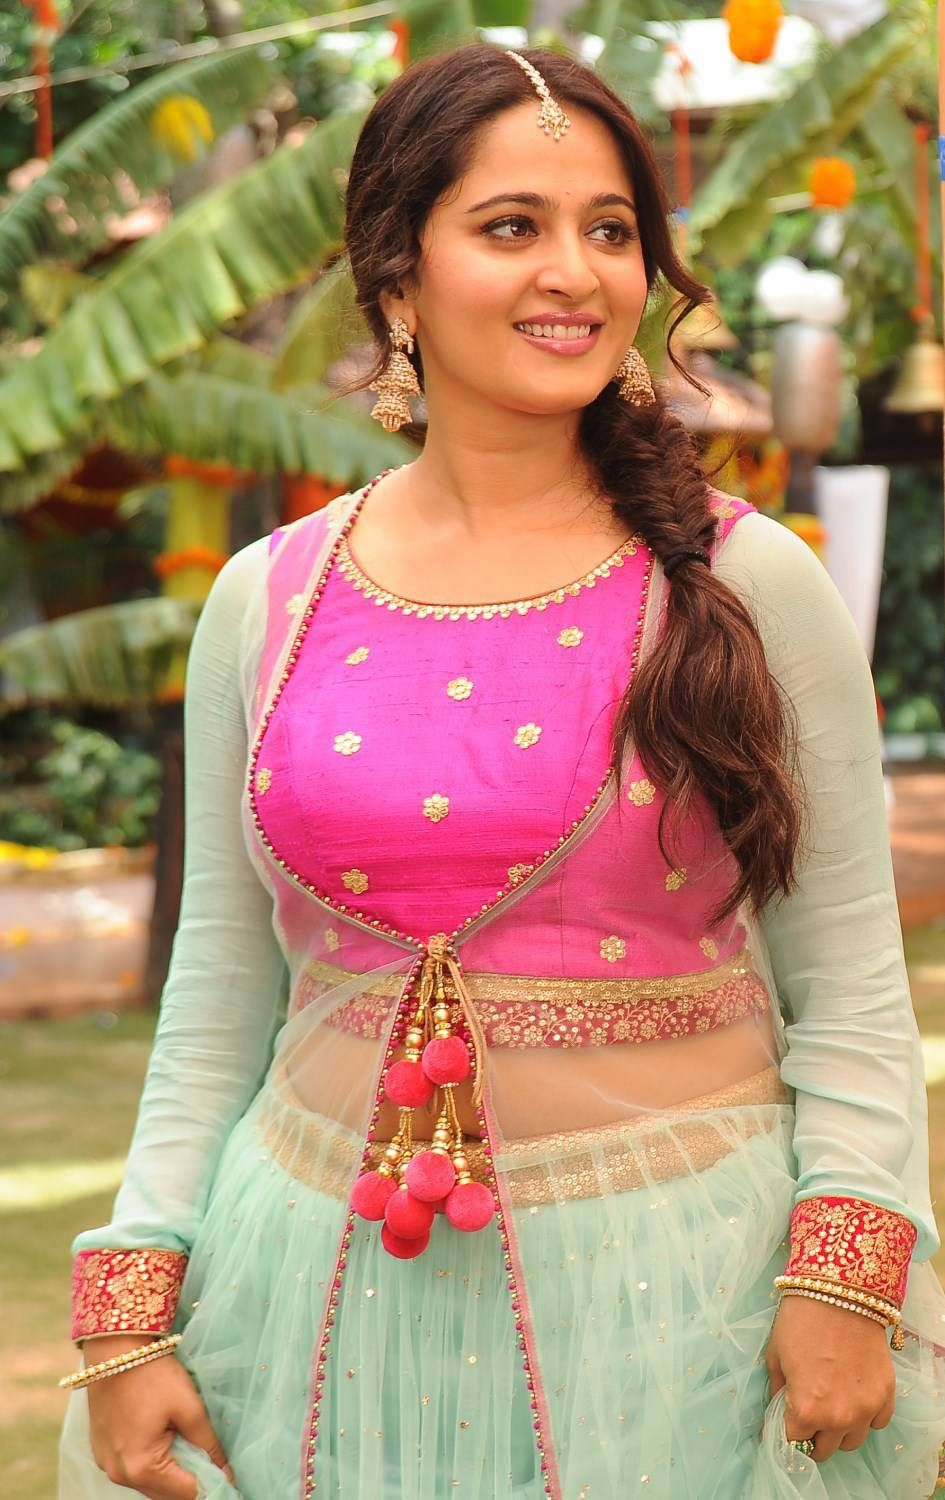 anushka shetty prabhasanushka shetty 2016, anushka shetty wiki, anushka shetty image, anushka shetty filmography, anushka shetty husband photos, anushka shetty hamara photos, anushka shetty wikipedia, anushka shetty film, anushka shetty and sonakshi sinha, anushka shetty hairstyle name, anushka shetty prabhas